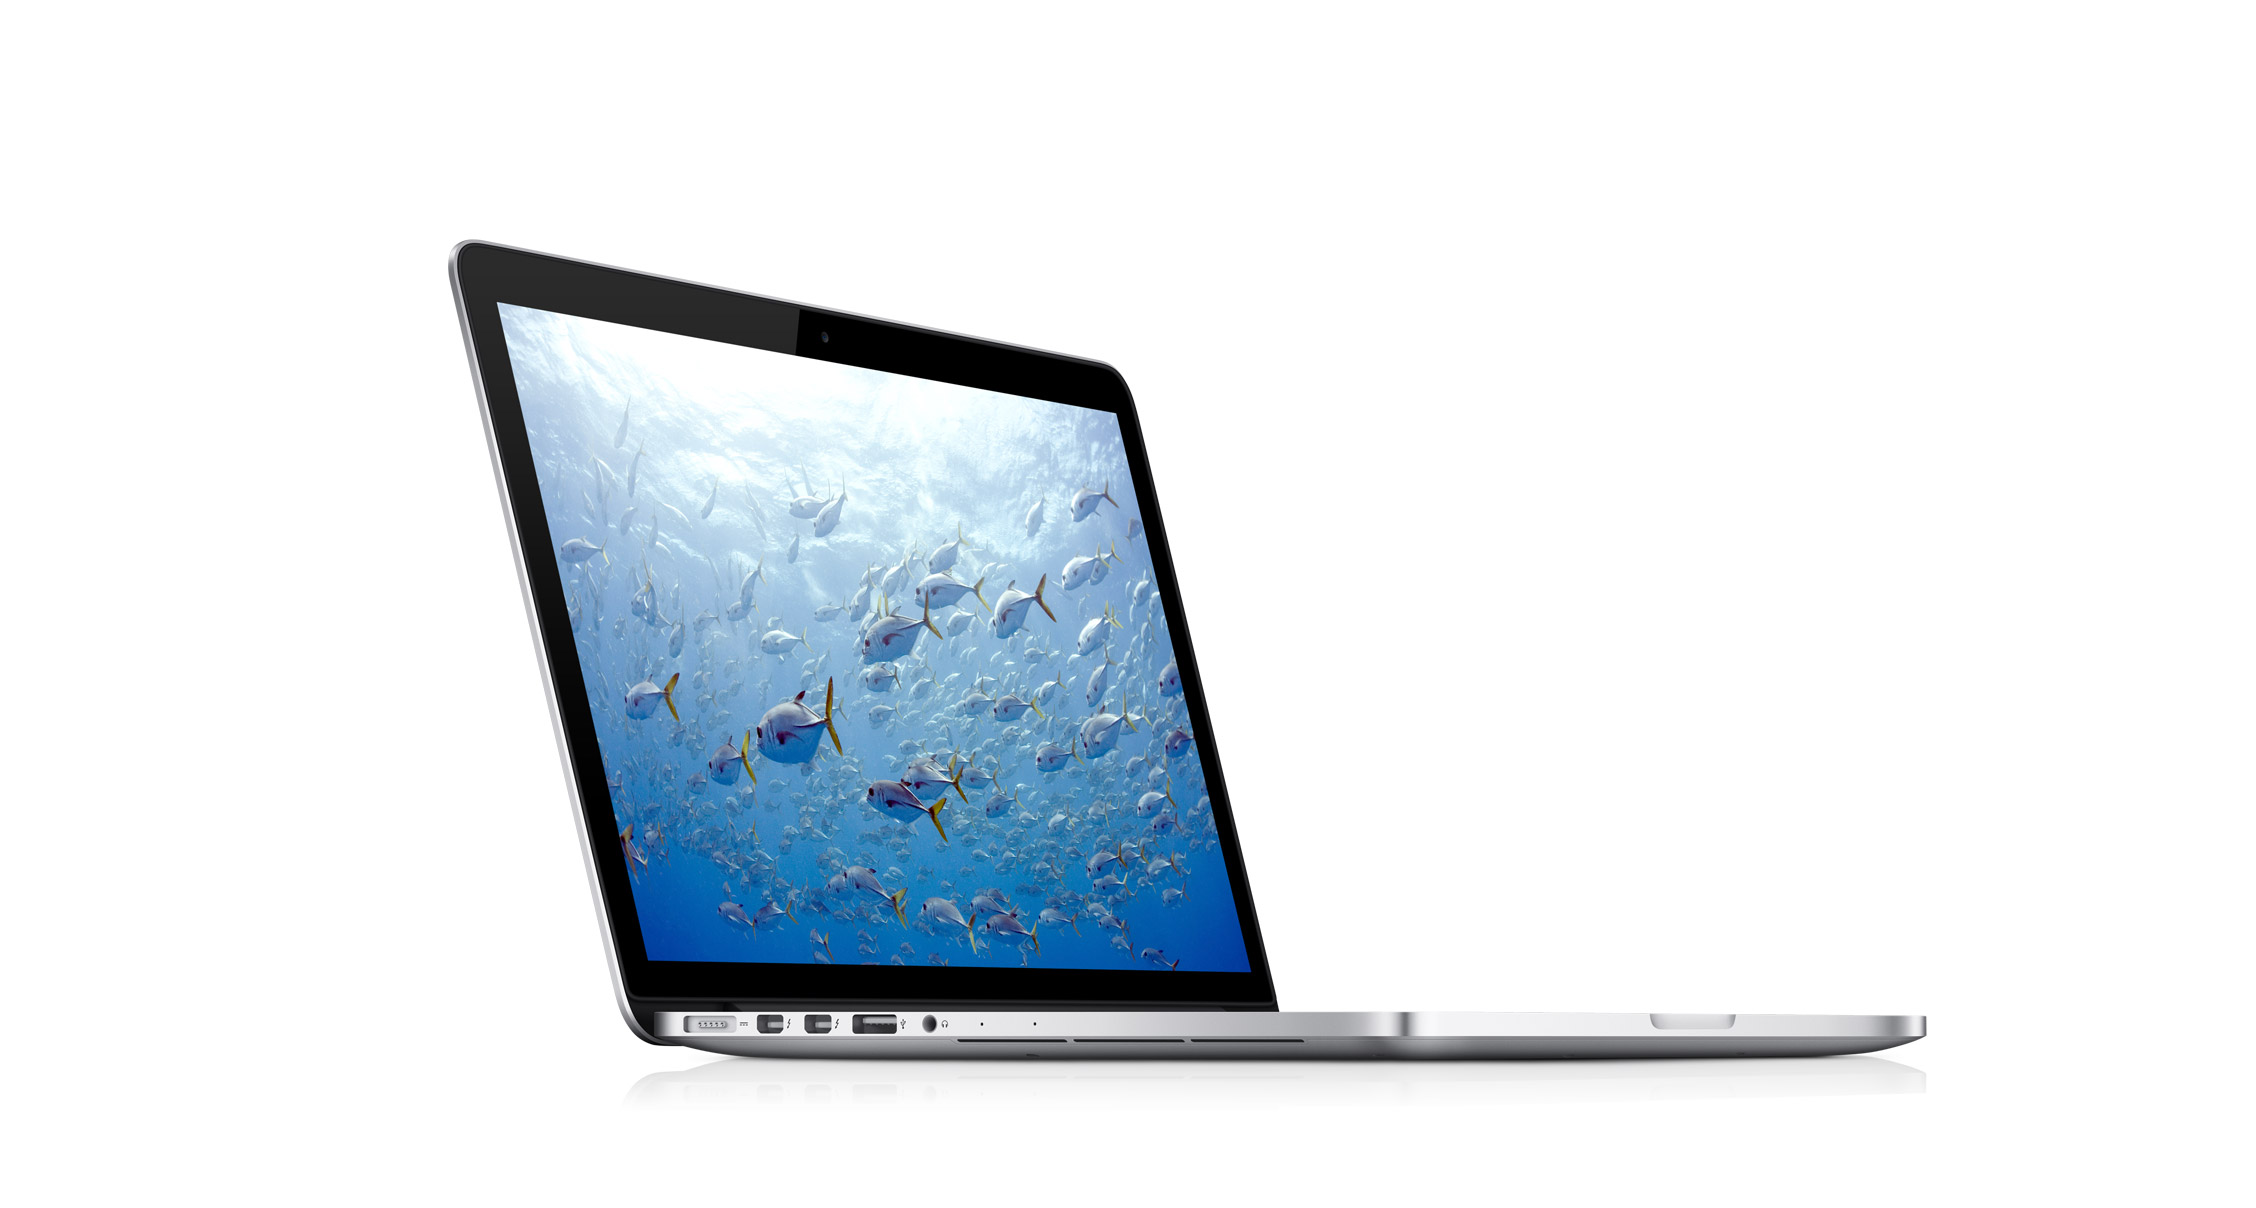 MacBook Air 13.3-inch: 128GB